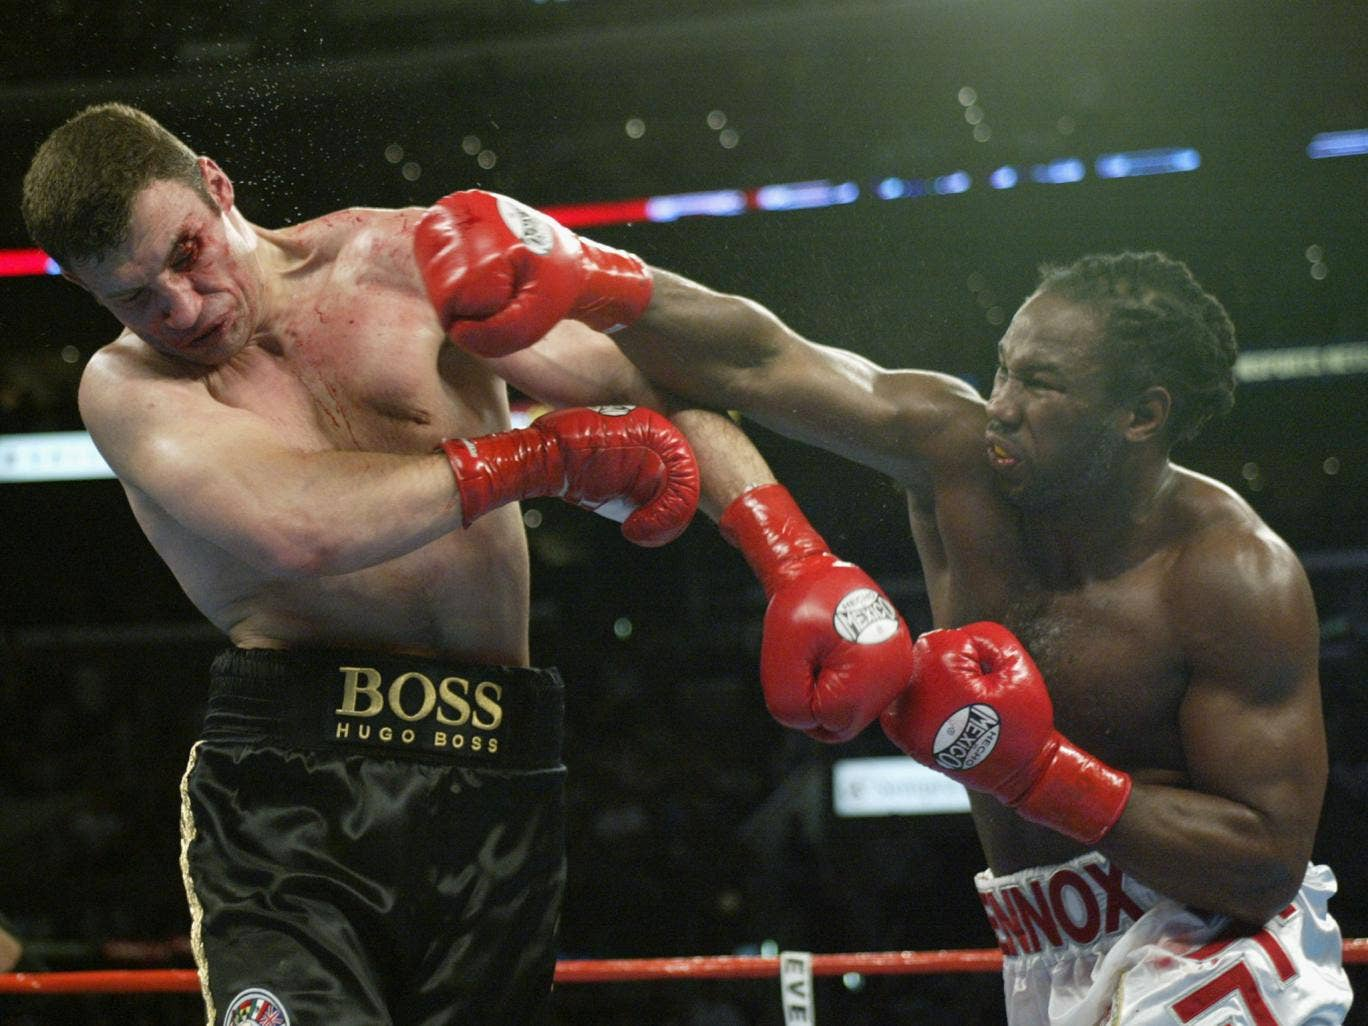 Lennox Lewis hasn't fought since 2003 when he beat Vitali Klitschko after he suffered a cut above his left eye